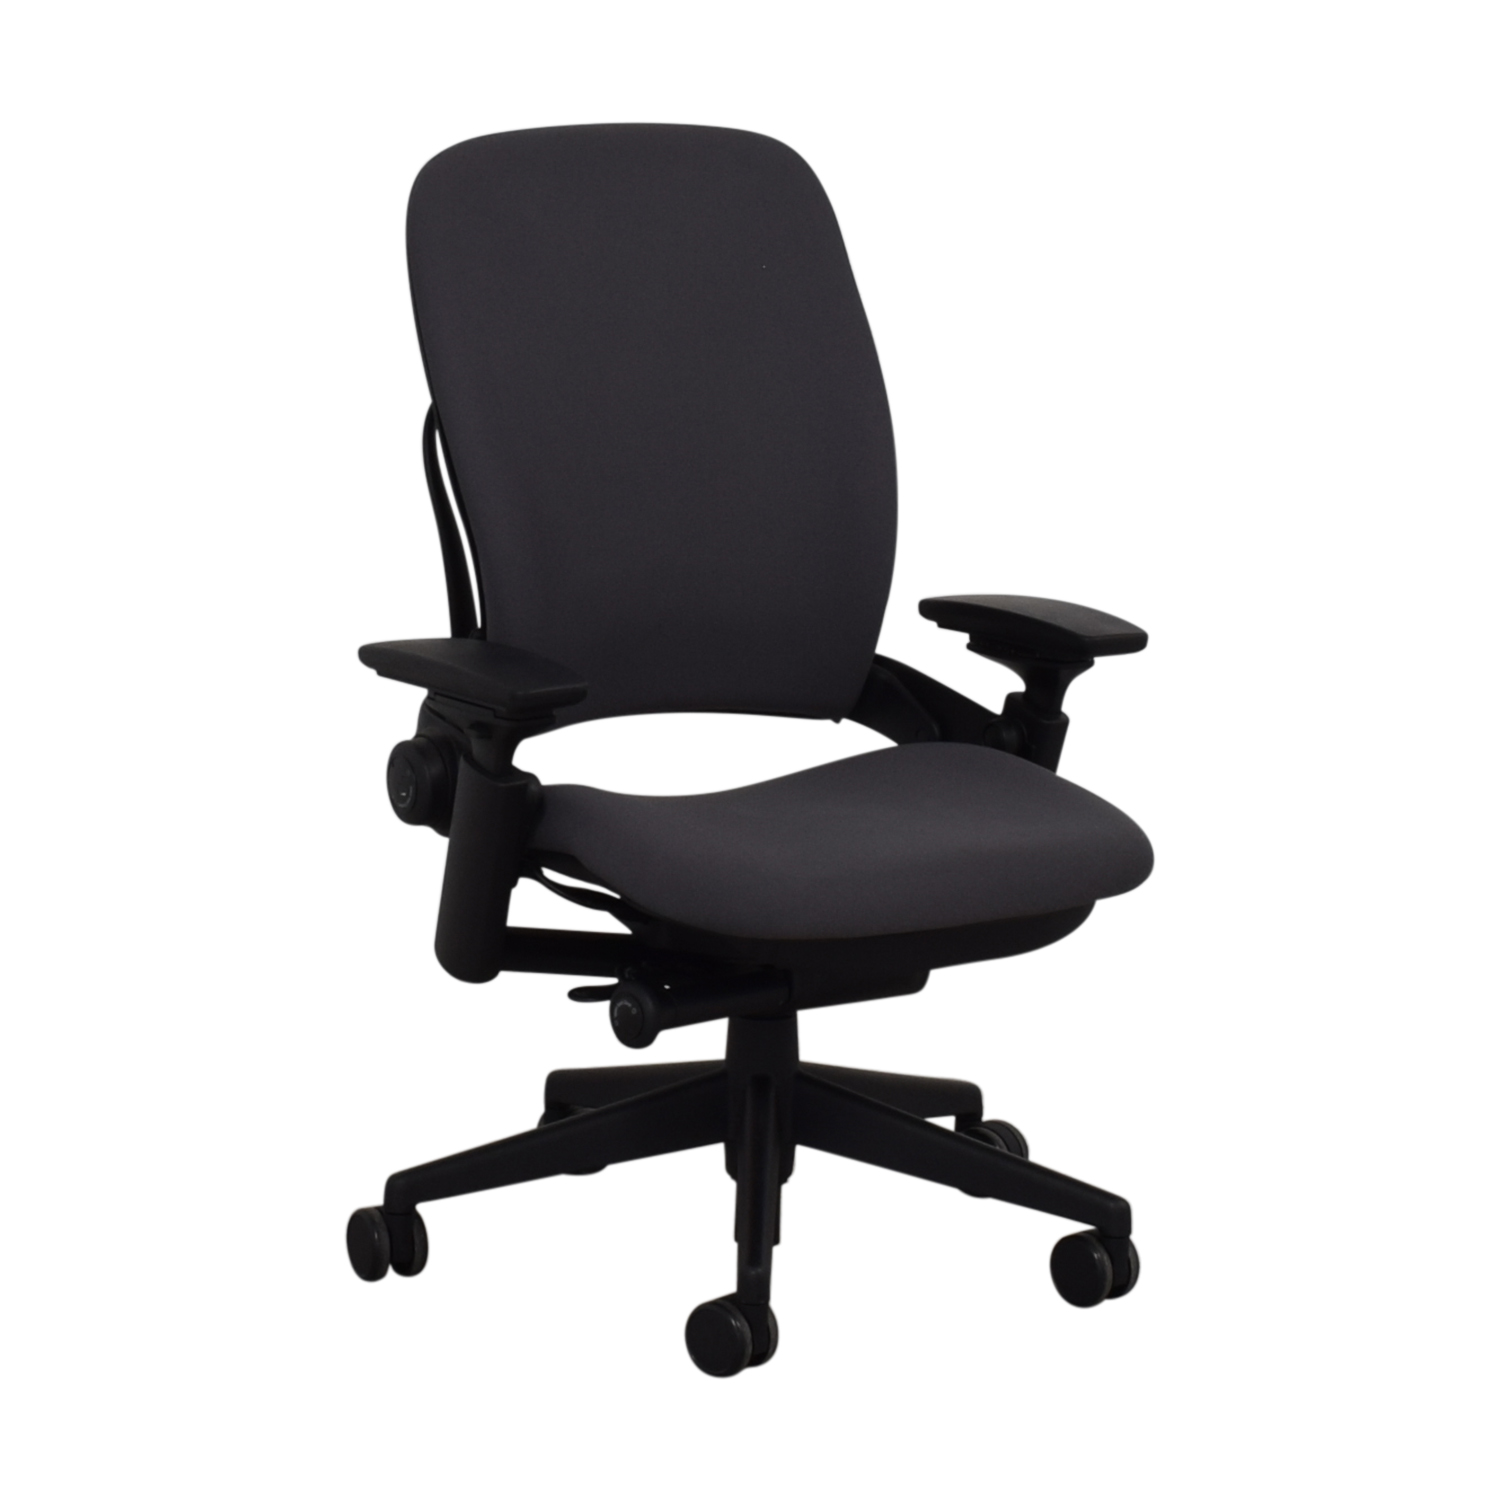 Steelcase Steelcase Leap V2 Office Chair for sale